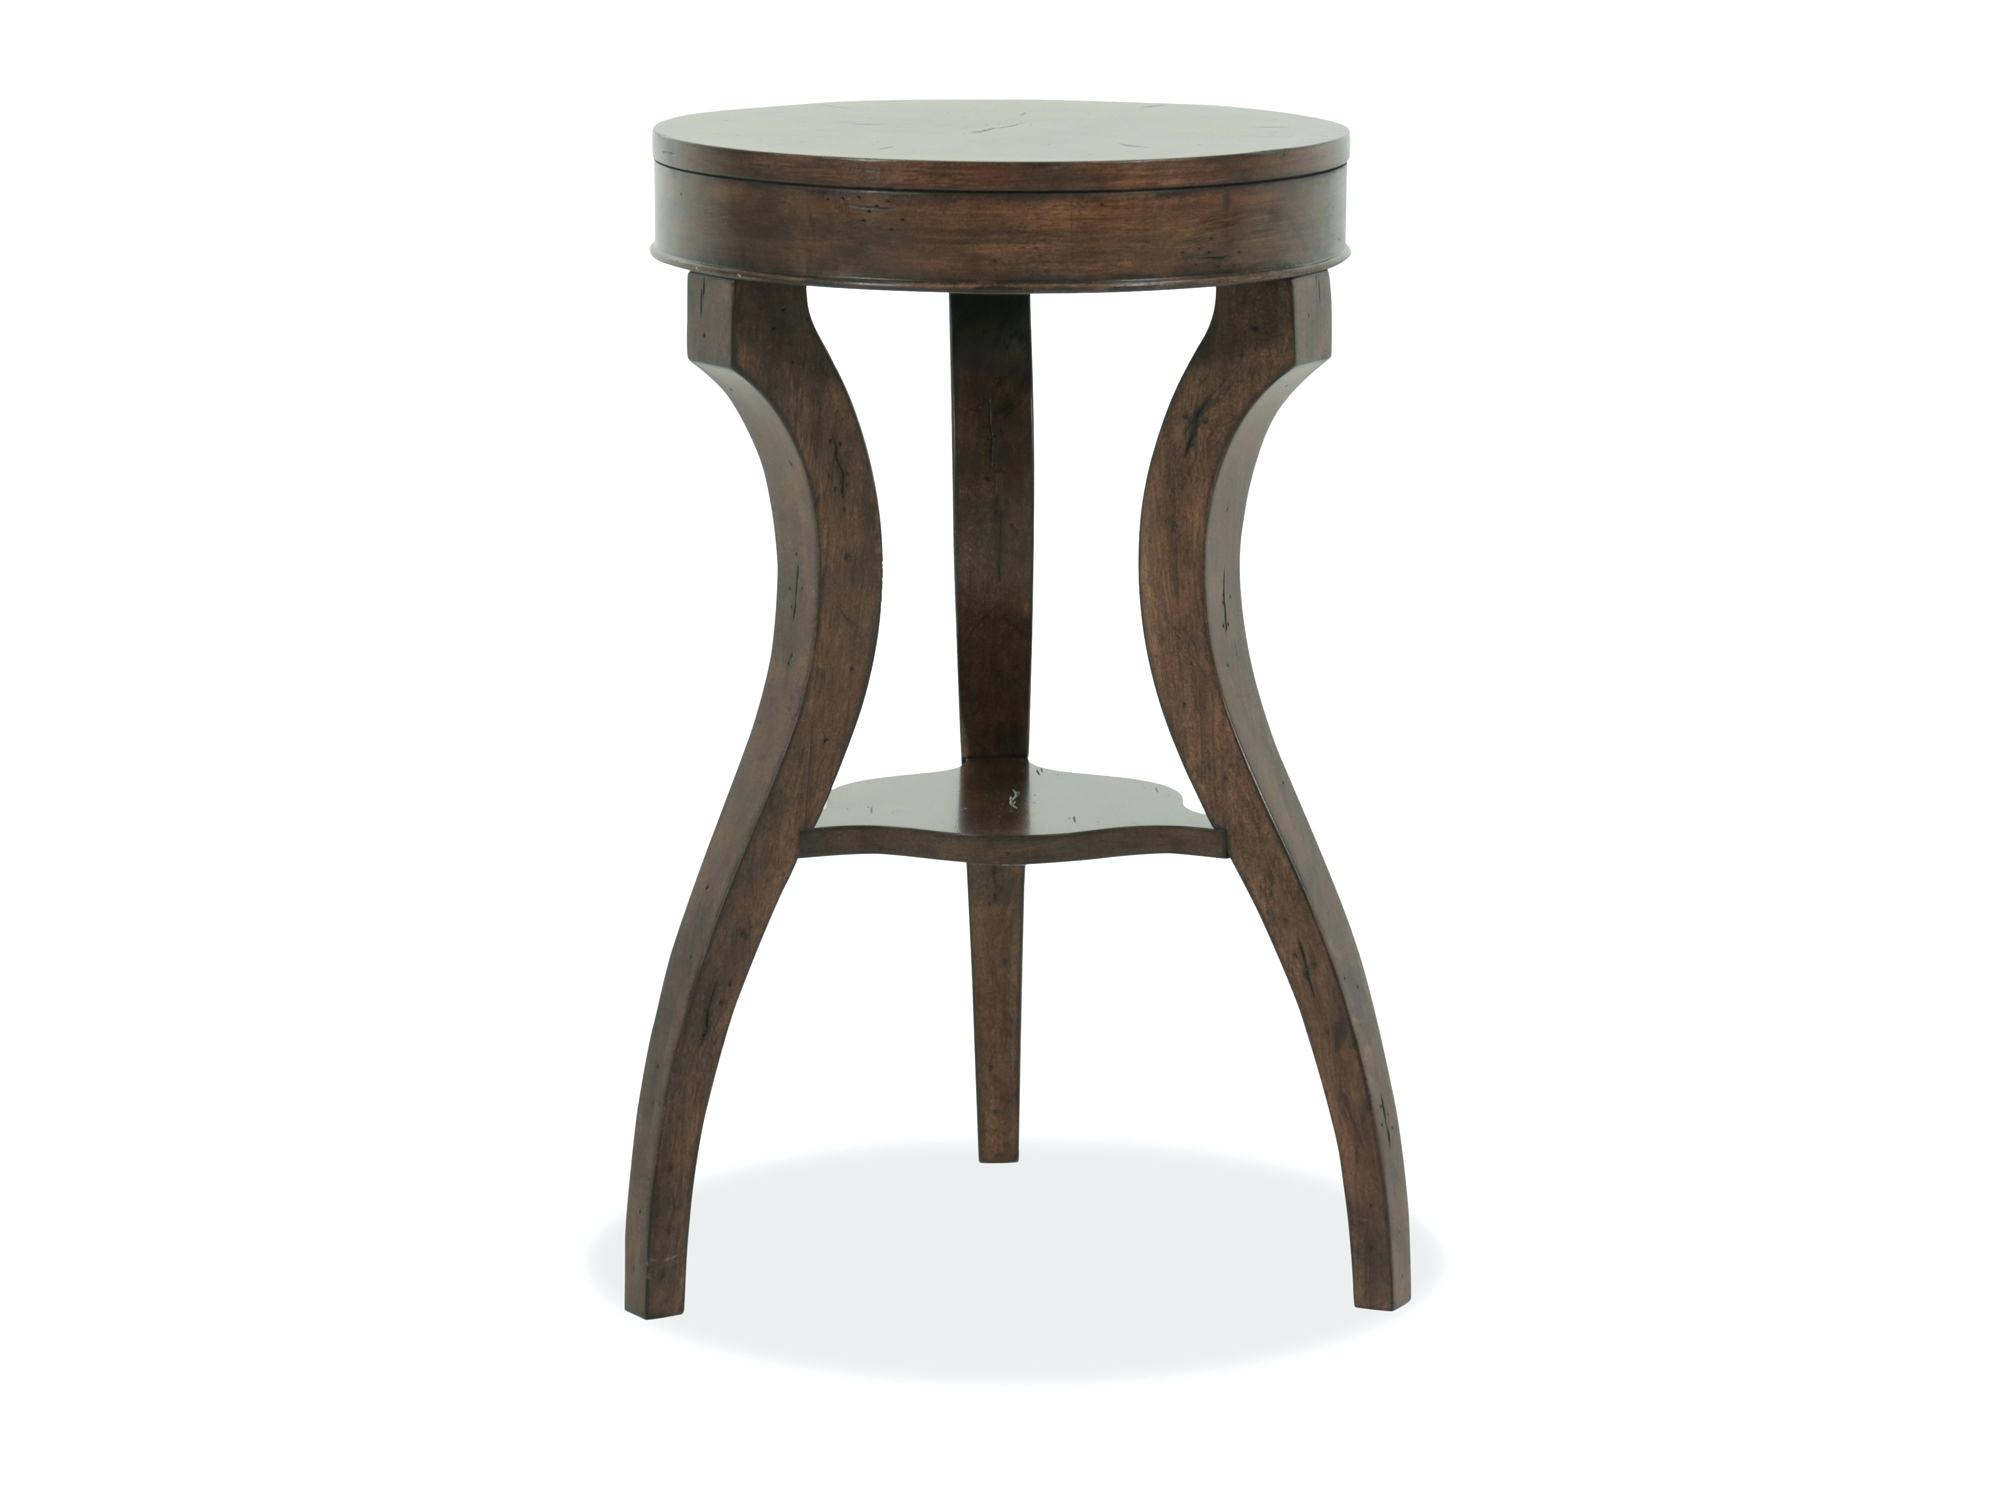 accent table metal and wood round faux target small kitchen unfinished avani mango drum top contemporary earthy brown scenic hook silver full size lawn furniture pier one